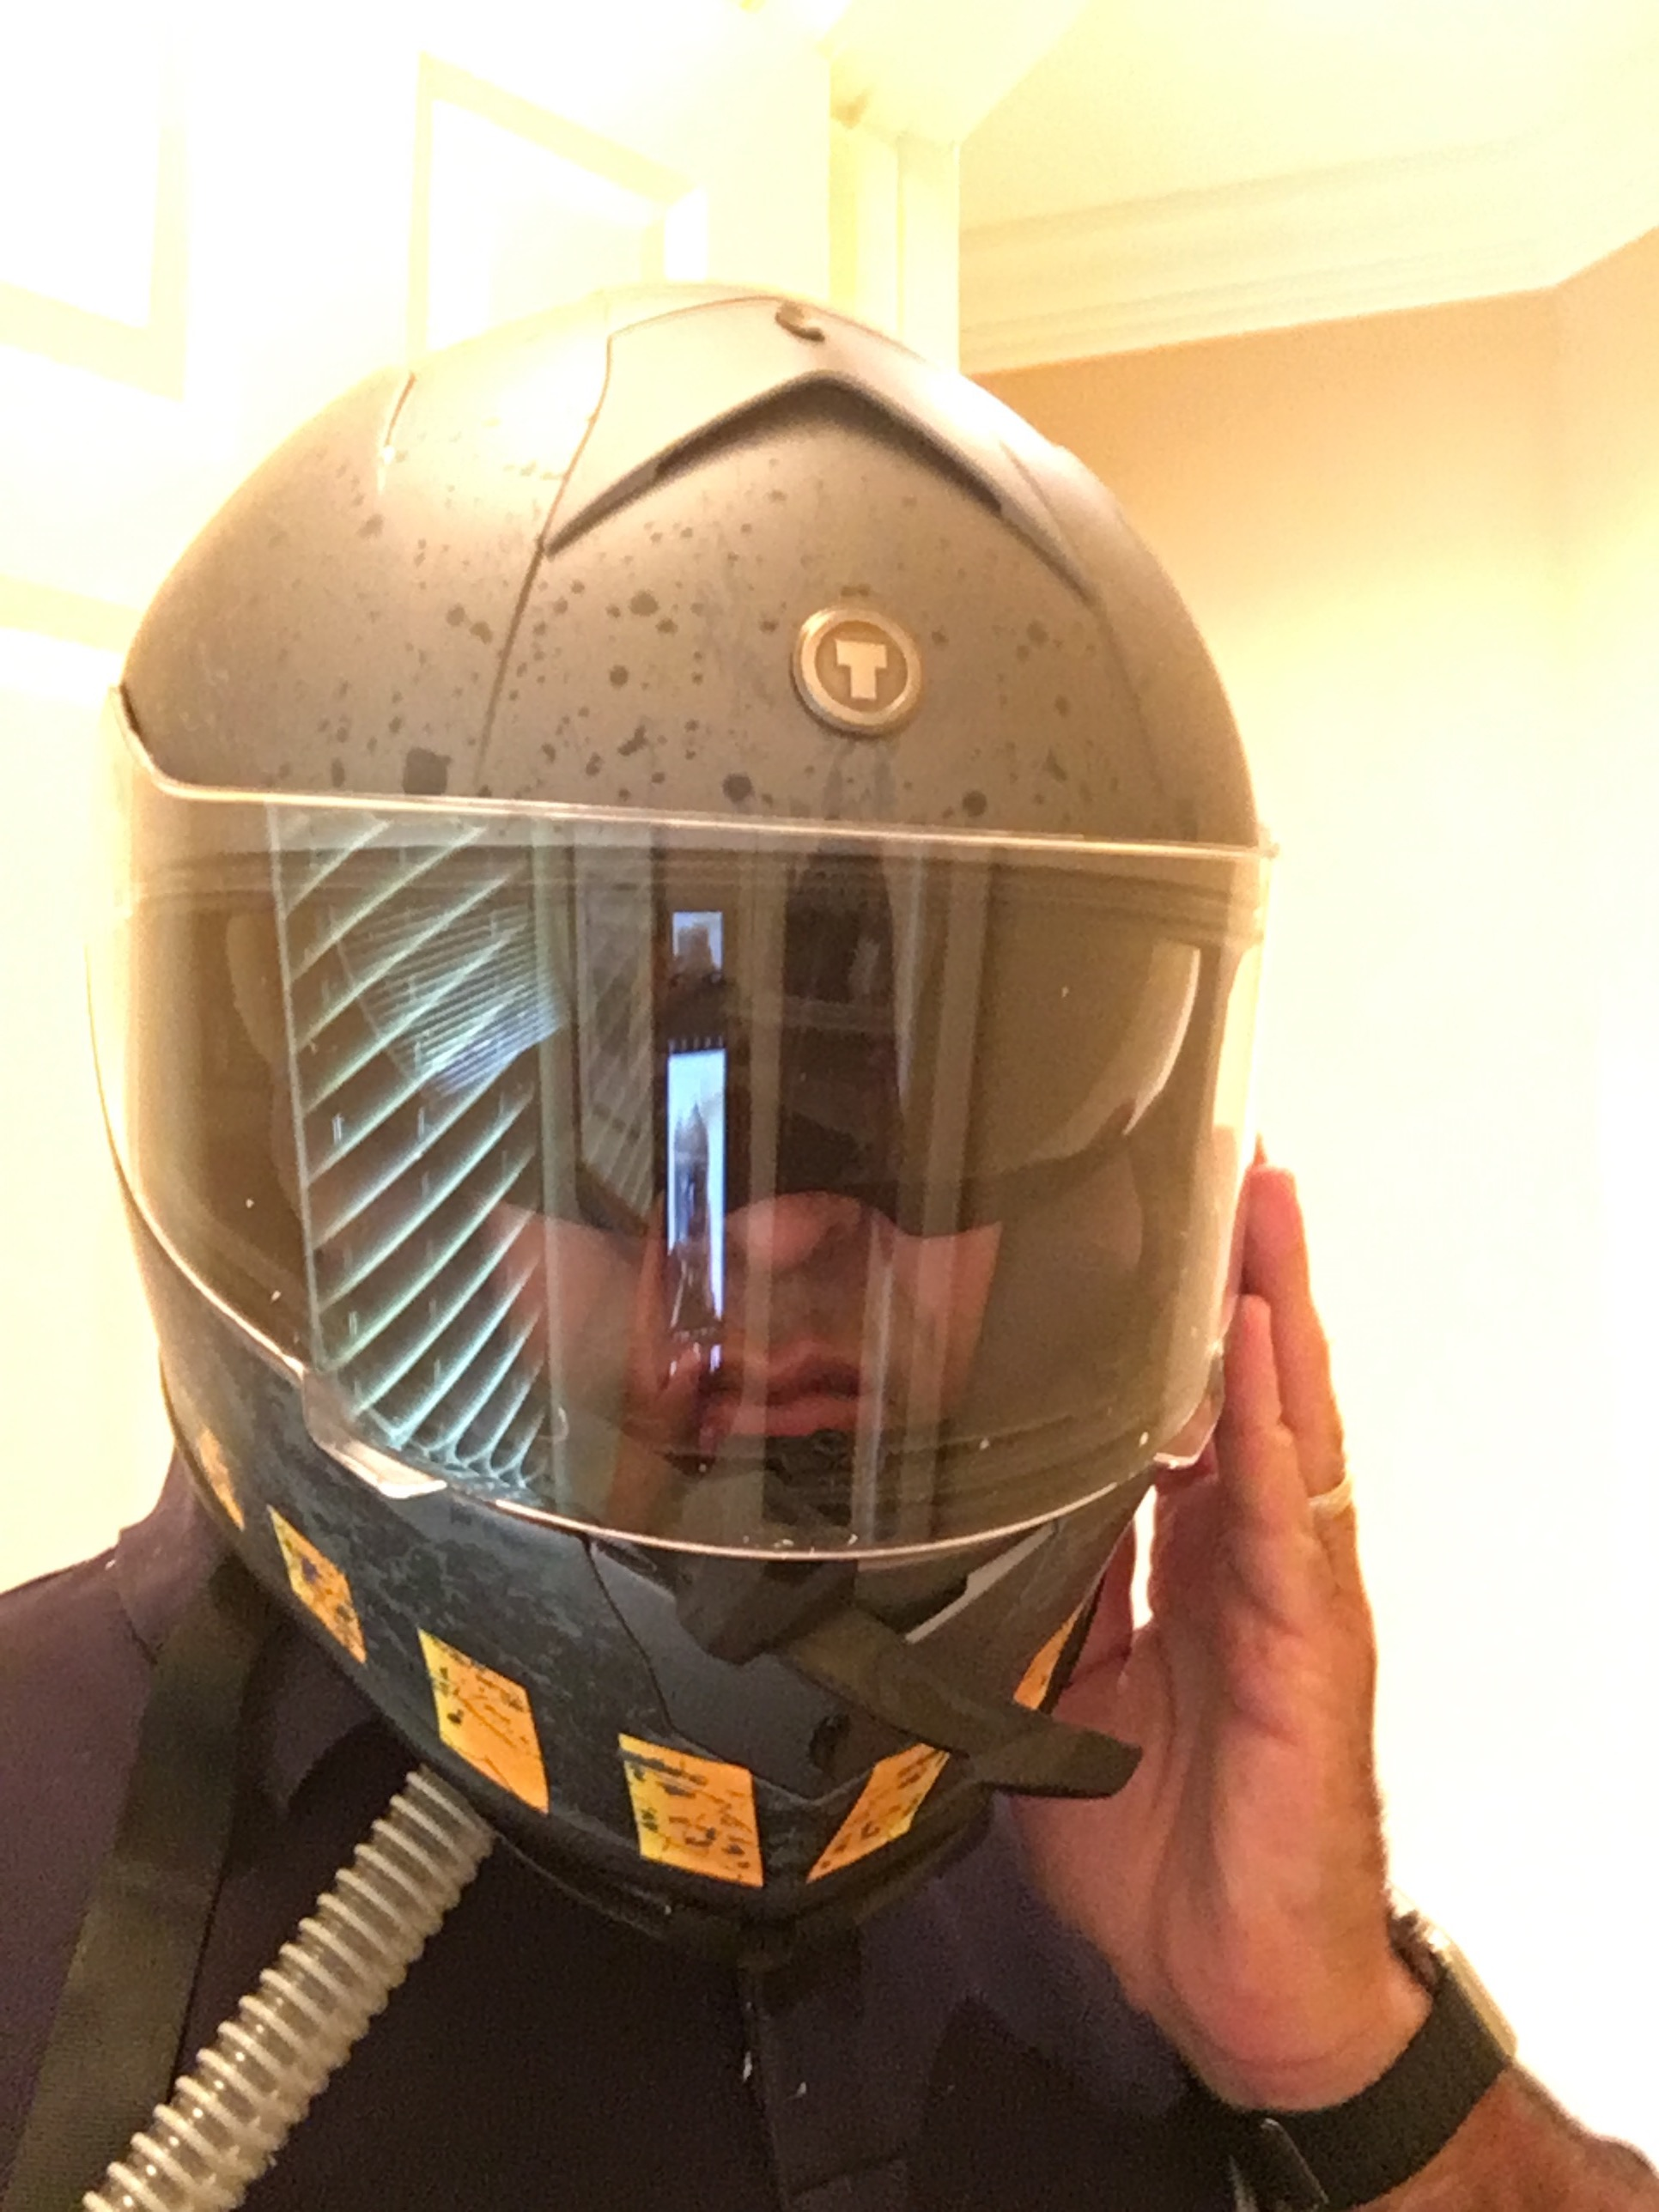 Me with my climate-controlled hostile environment helmet invention.